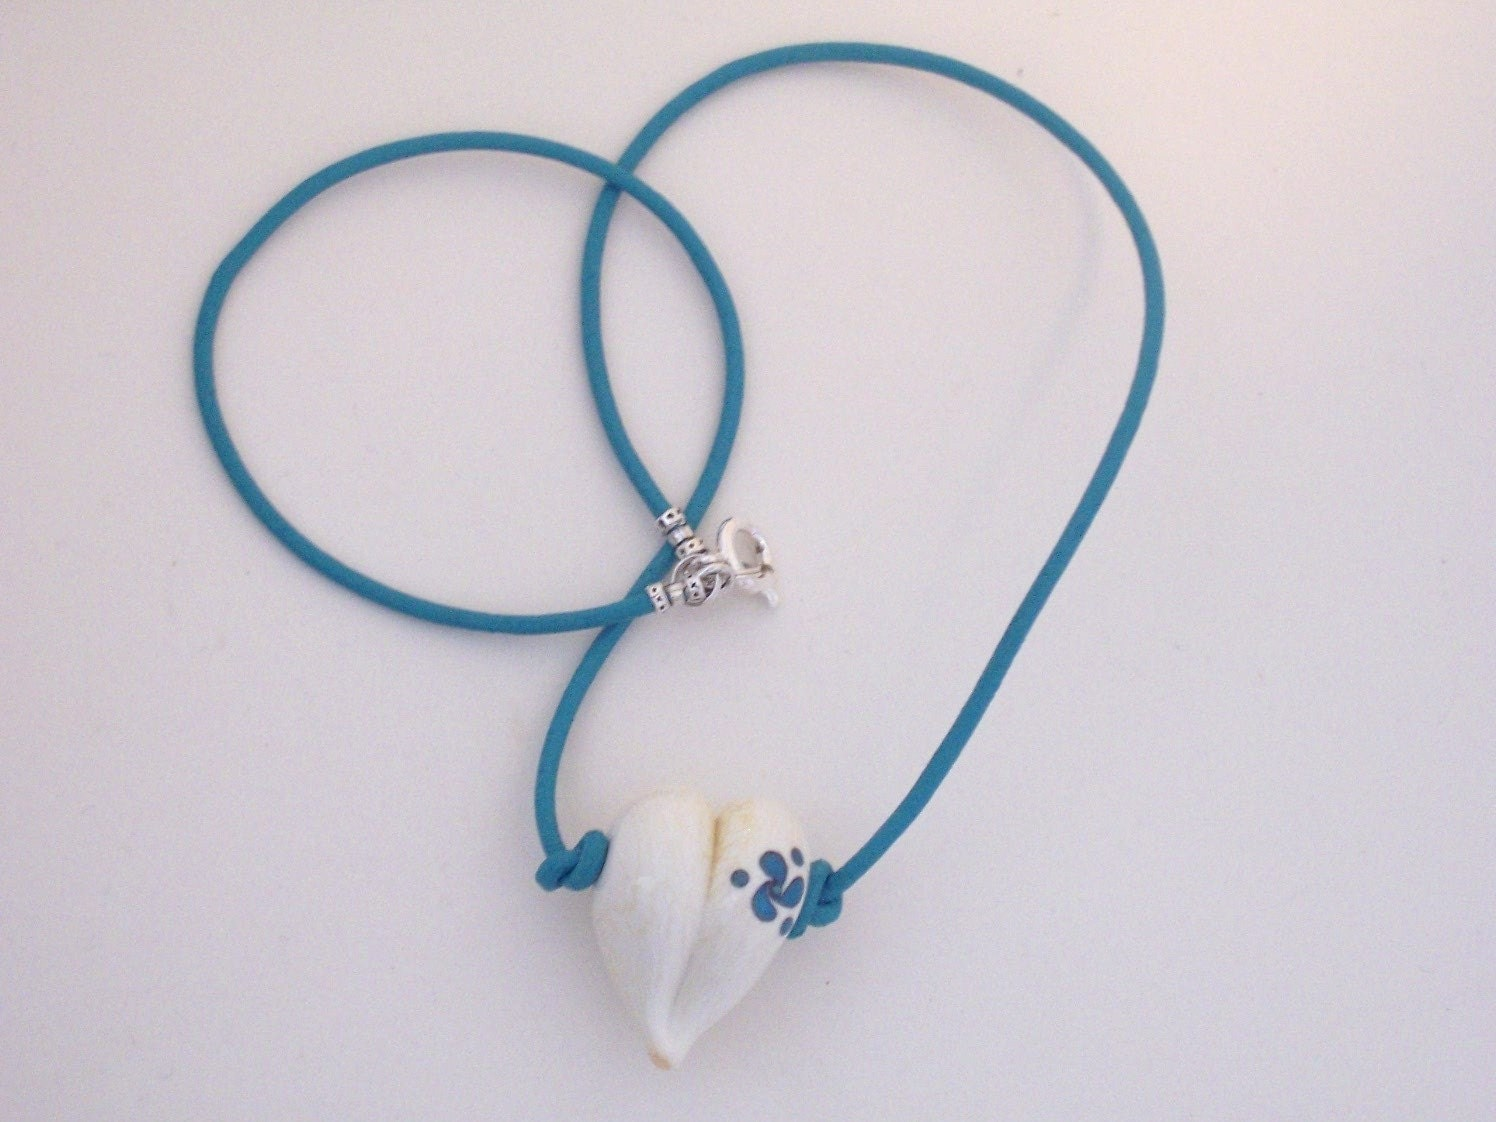 Turquoise Twist Heart Leather Cord ssdM493